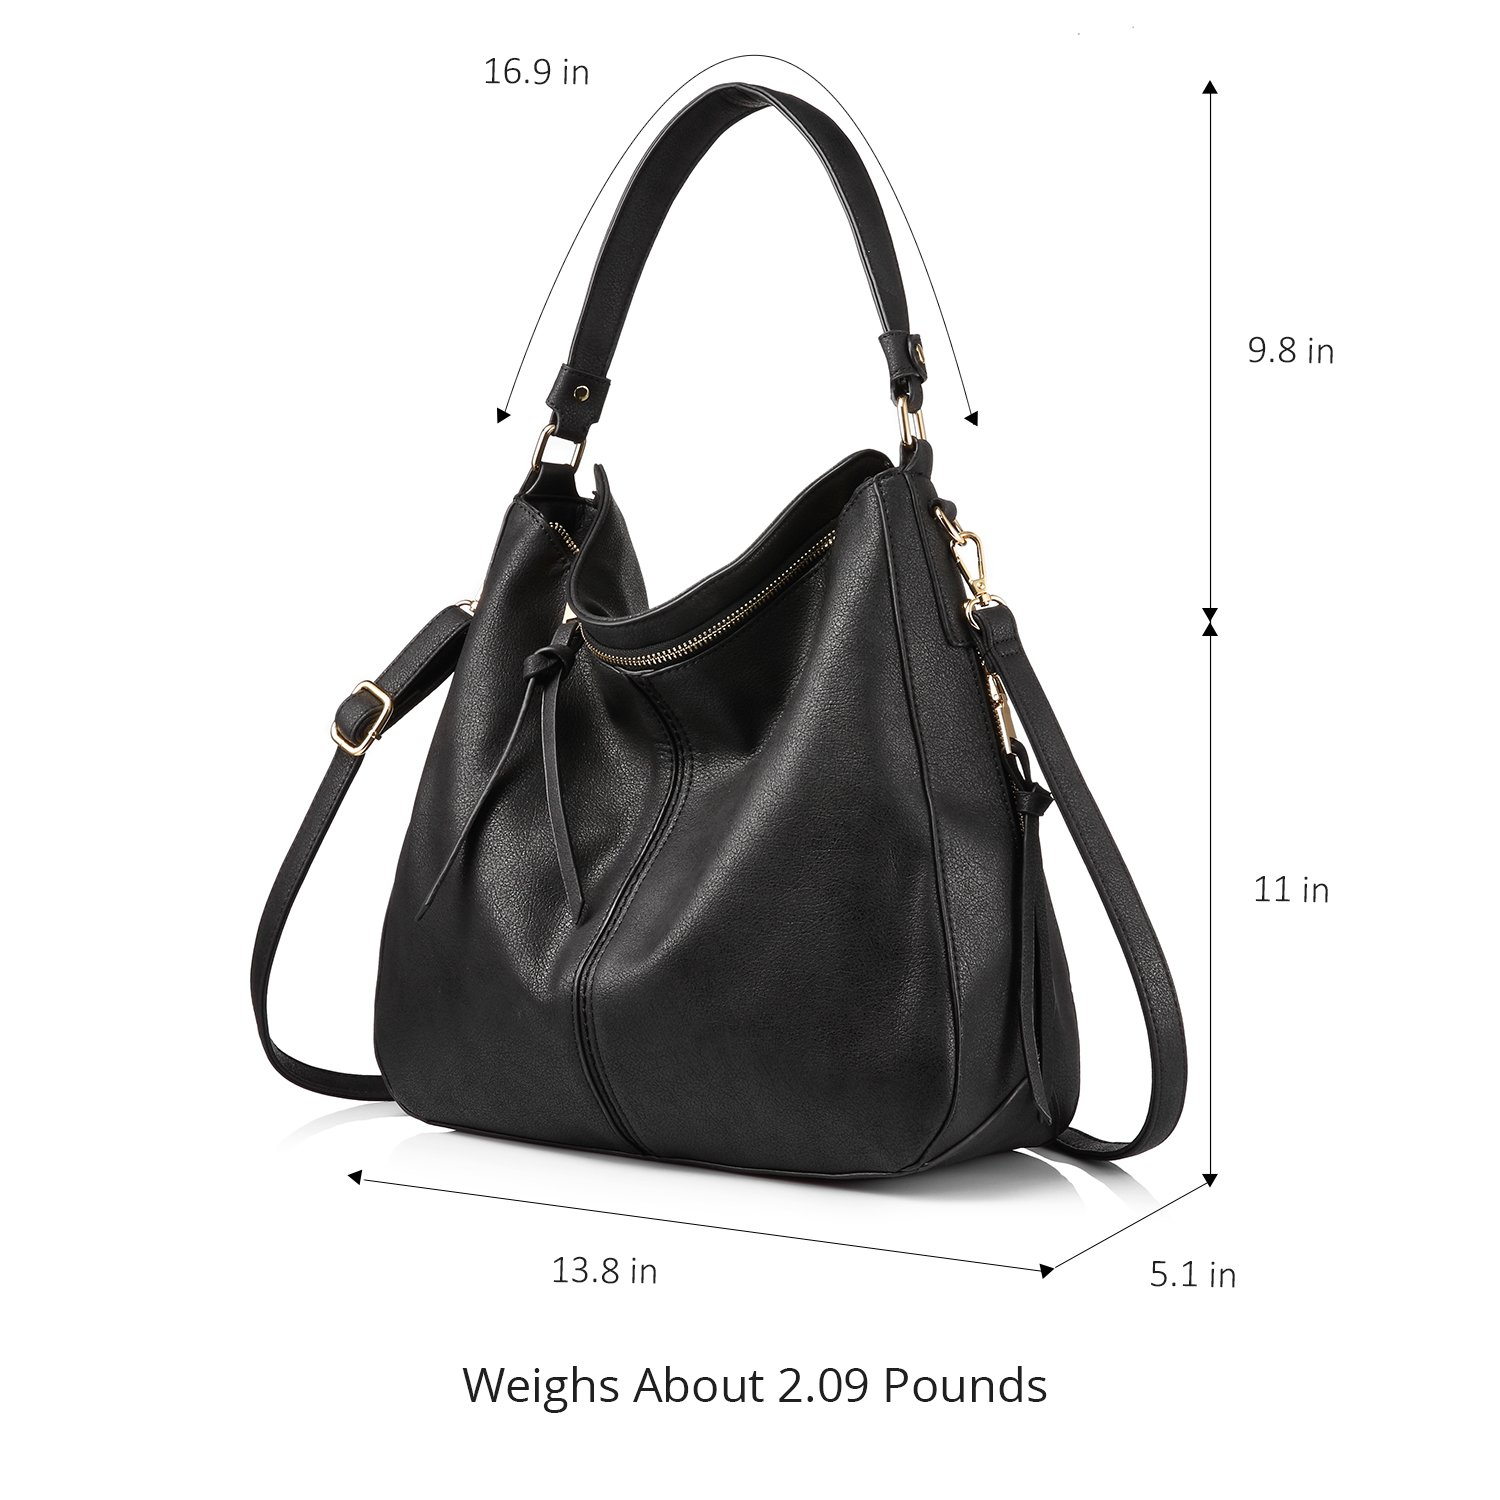 Handbags for Women Large Designer Ladies Hobo Bag Bucket Purse Faux Leather  by Realer  Amazon.in  Clothing   Accessories 37b276d77b860